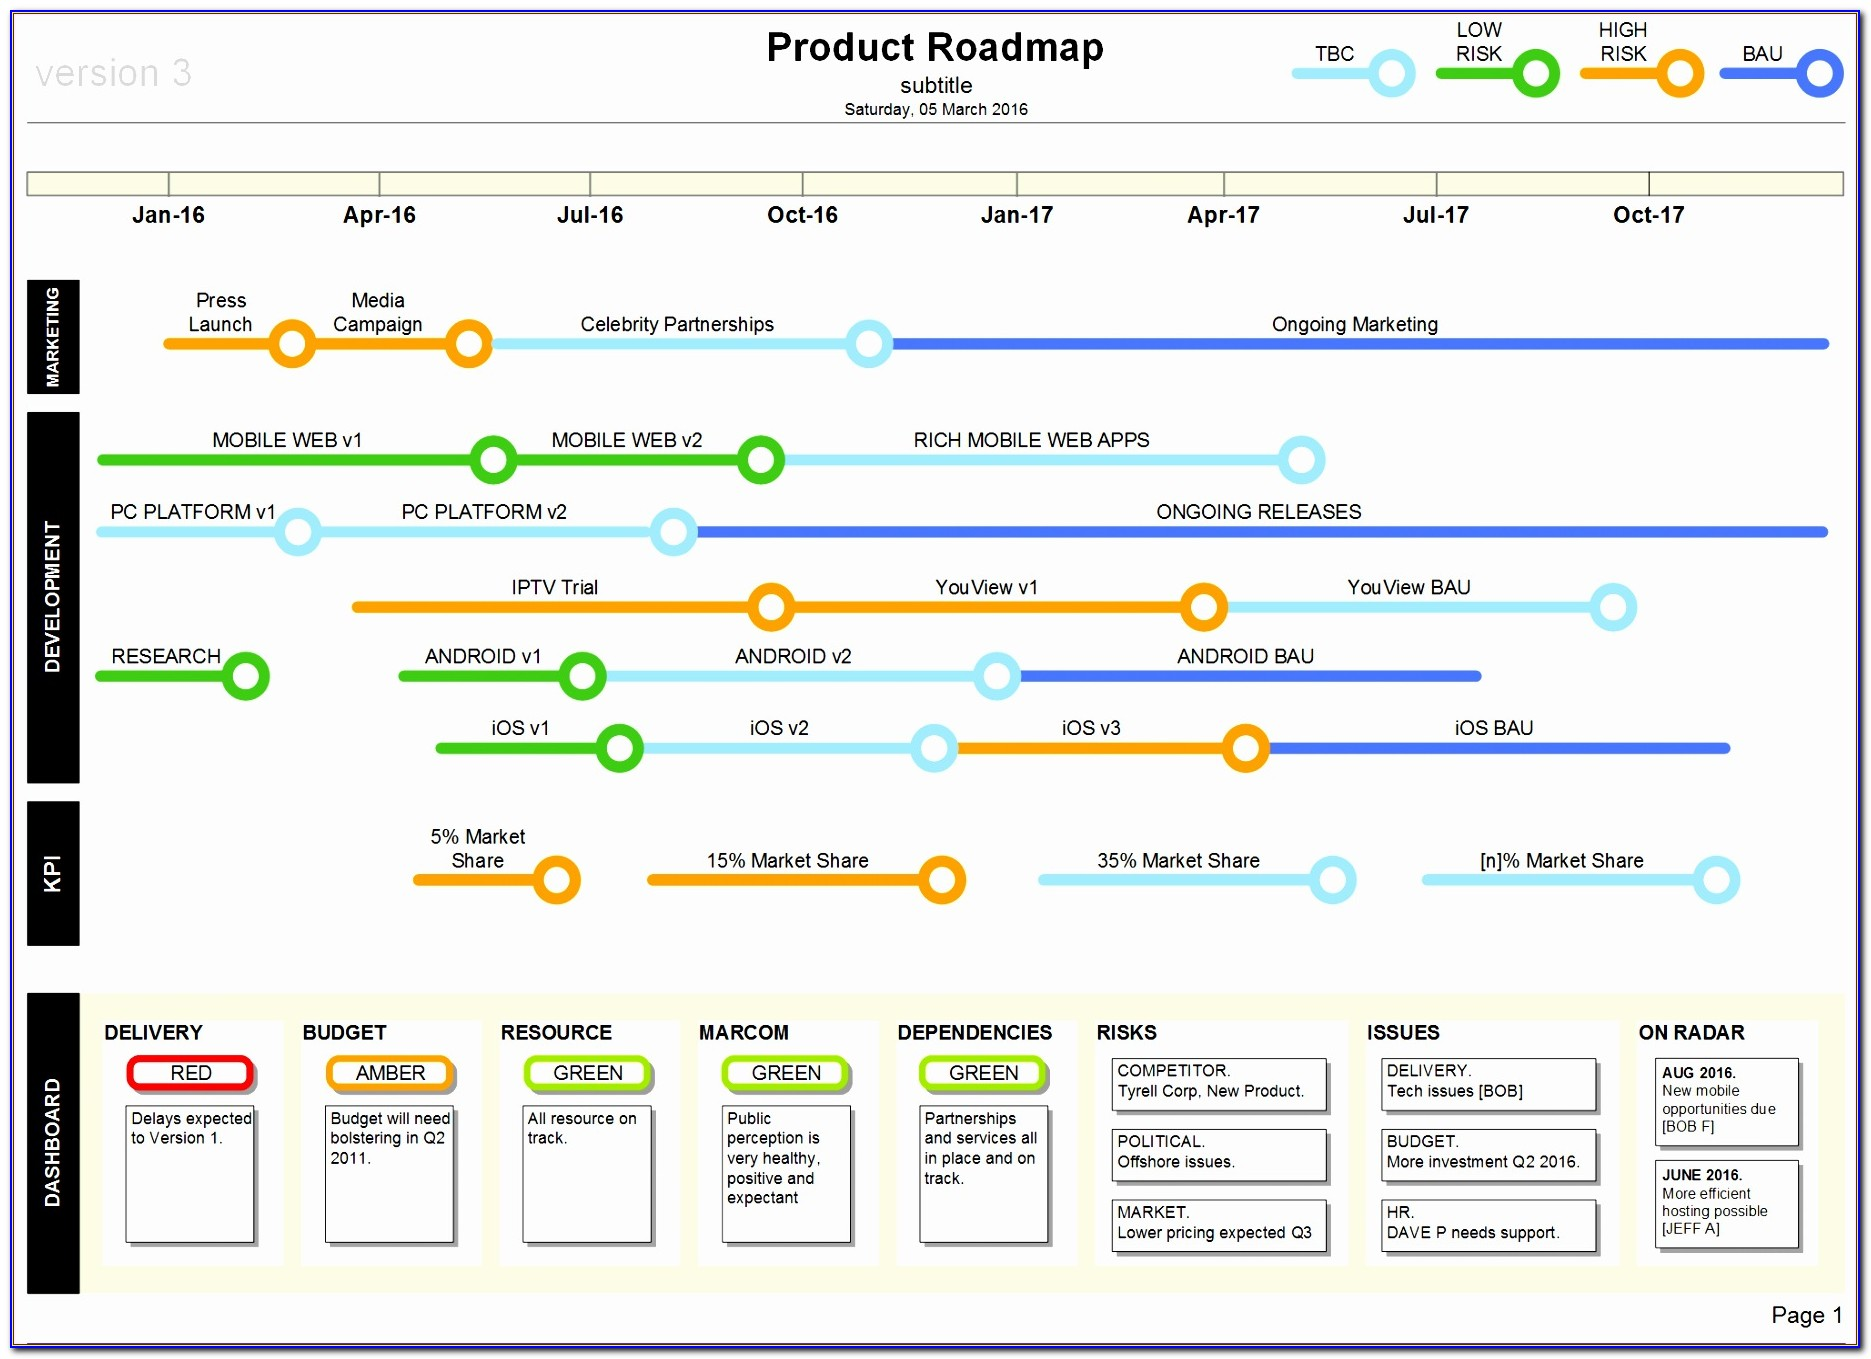 Kpi Dashboard Excel Template Free Download Cvhjo Best Of This Impressive Visio Product Roadmap Template Presents